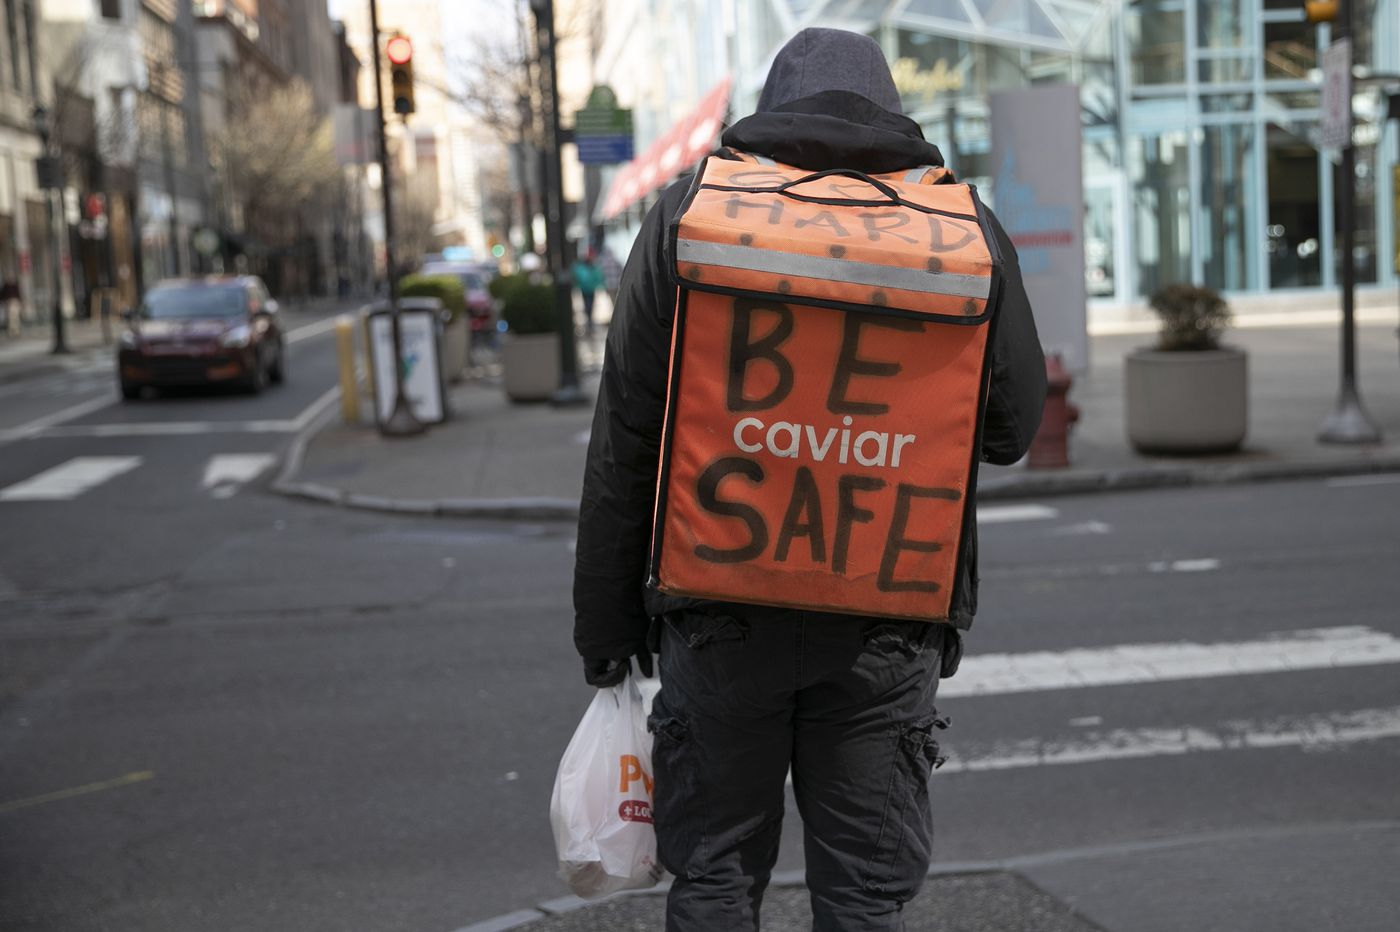 Workers in the poorest big city in America are reeling as coronavirus leaves thousands jobless